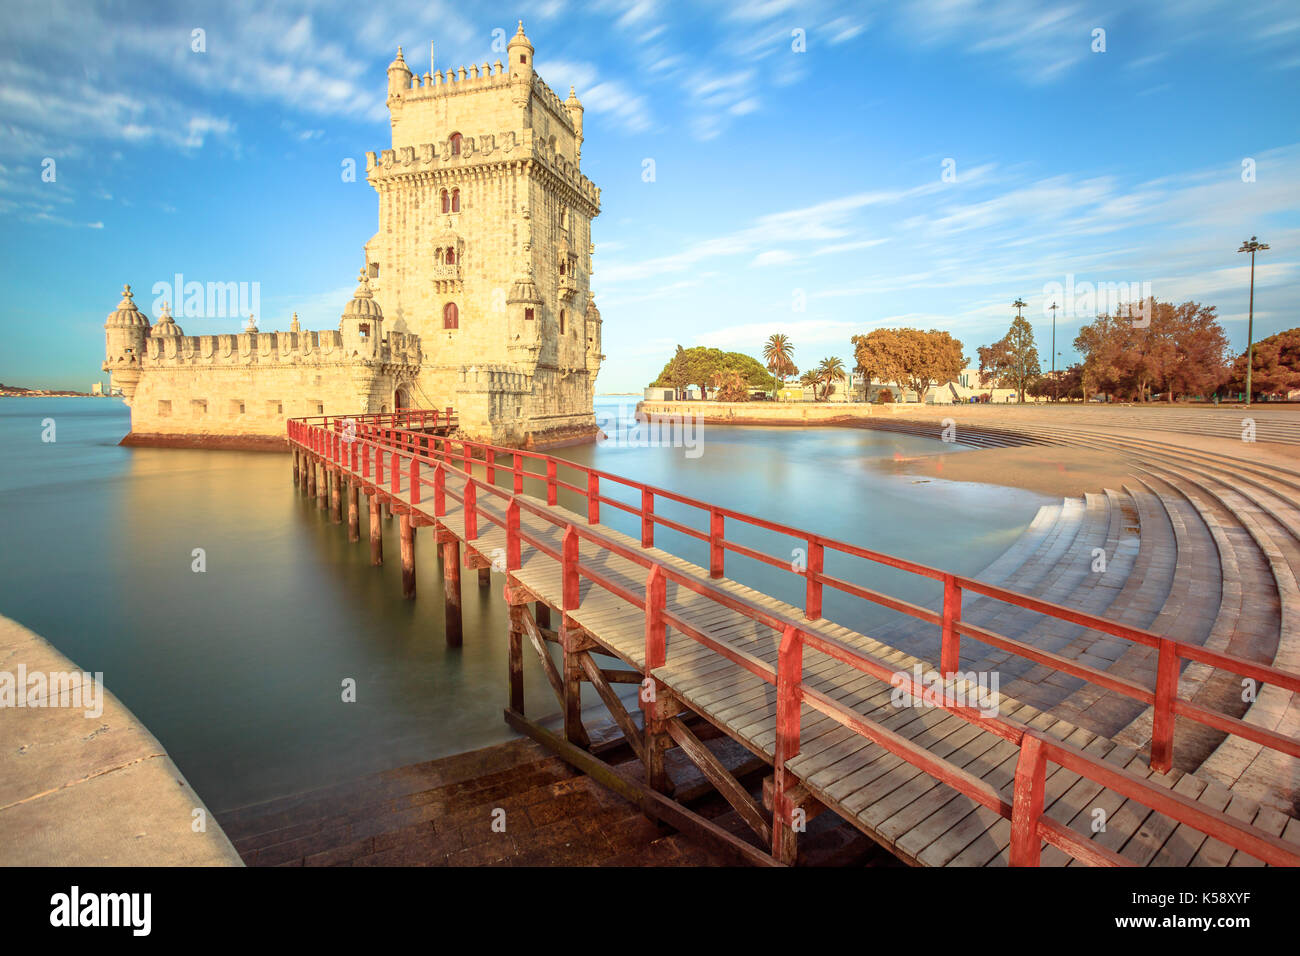 Belem tower at low tide in the morning torre de belem is unesco belem tower at low tide in the morning torre de belem is unesco heritage and symbol of lisbon in belem district on tagus river belem tower is the m biocorpaavc